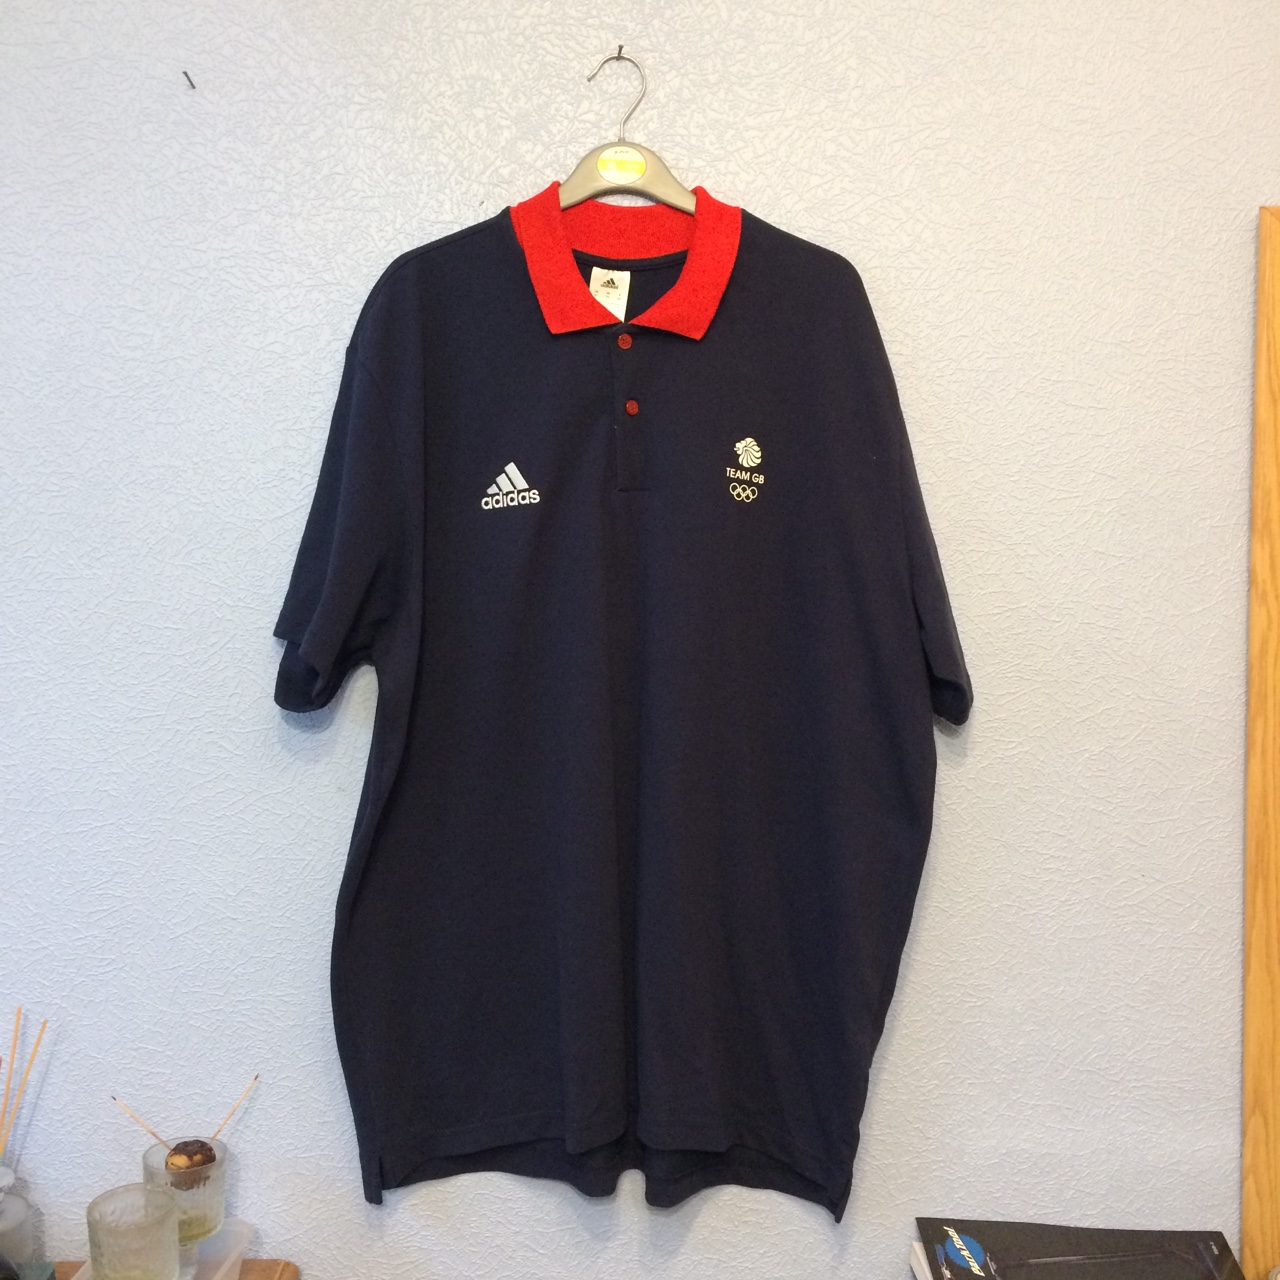 adidas team gb polo shirt